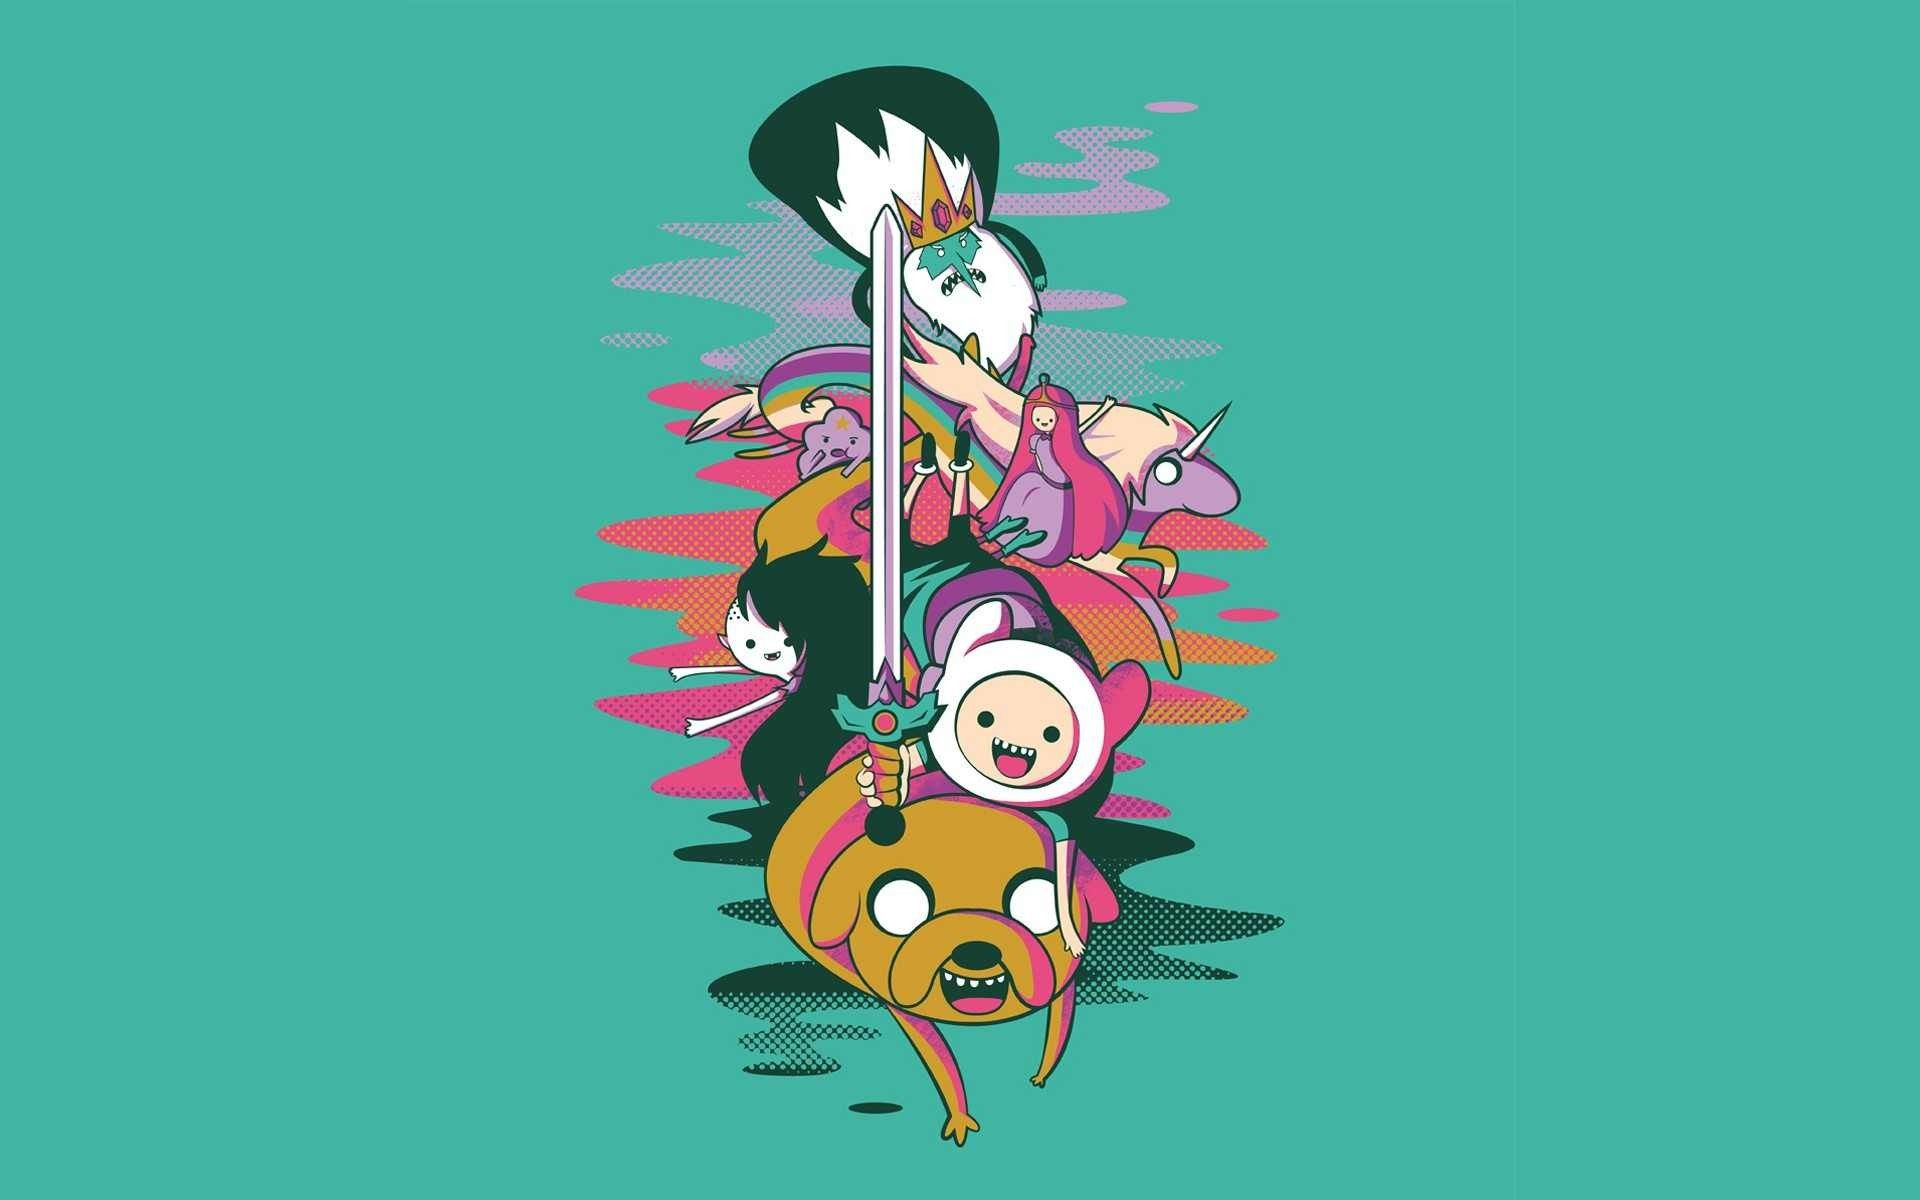 Adventure Time Desktop Backgrounds Wallpaper 1920 1080 Finn And Jake Hd Wallpapers 29 Wallpa Adventure Time Wallpaper Adventure Time Marceline And Bubblegum